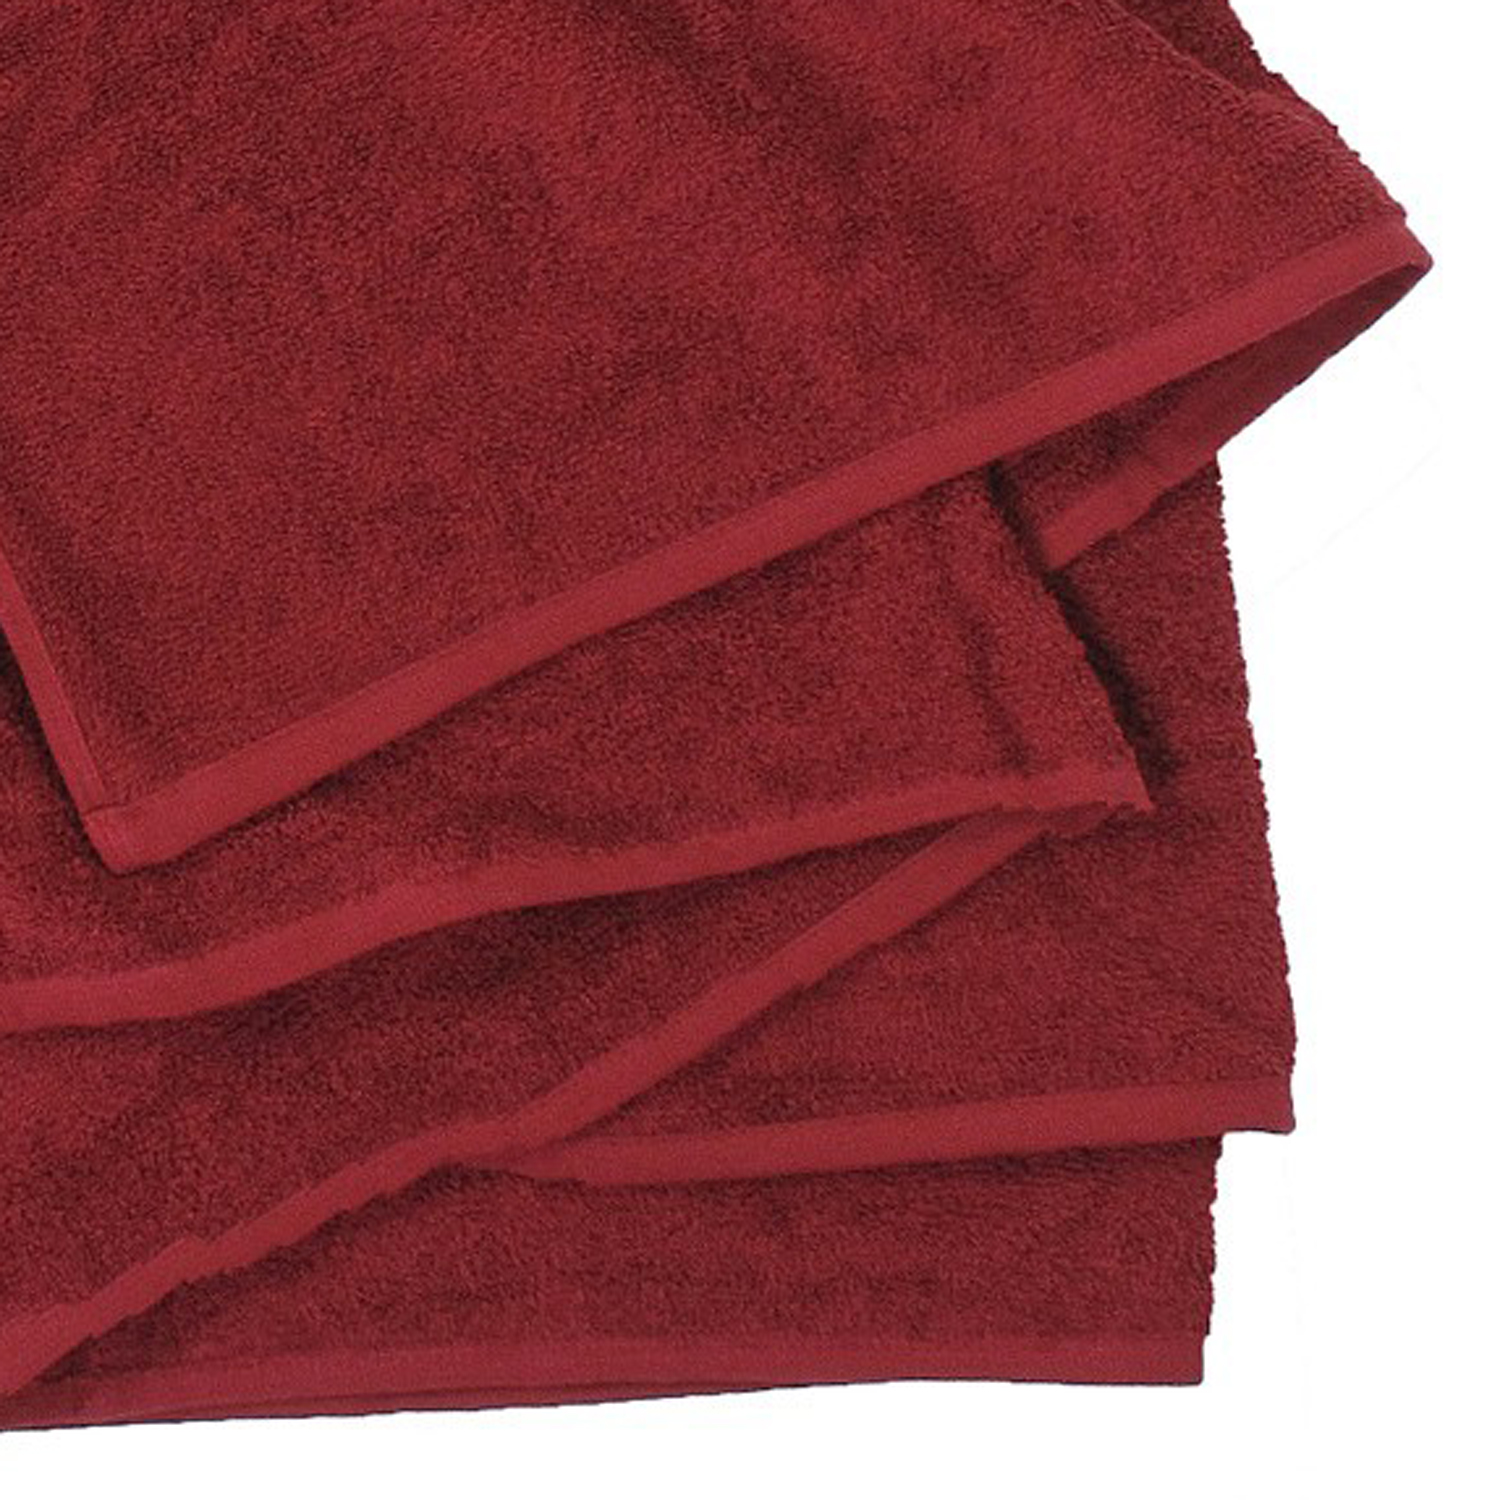 Detail Image to Bath towel in burgundy red by Kapart in large sizes 100x220 cm and 155x220 cm